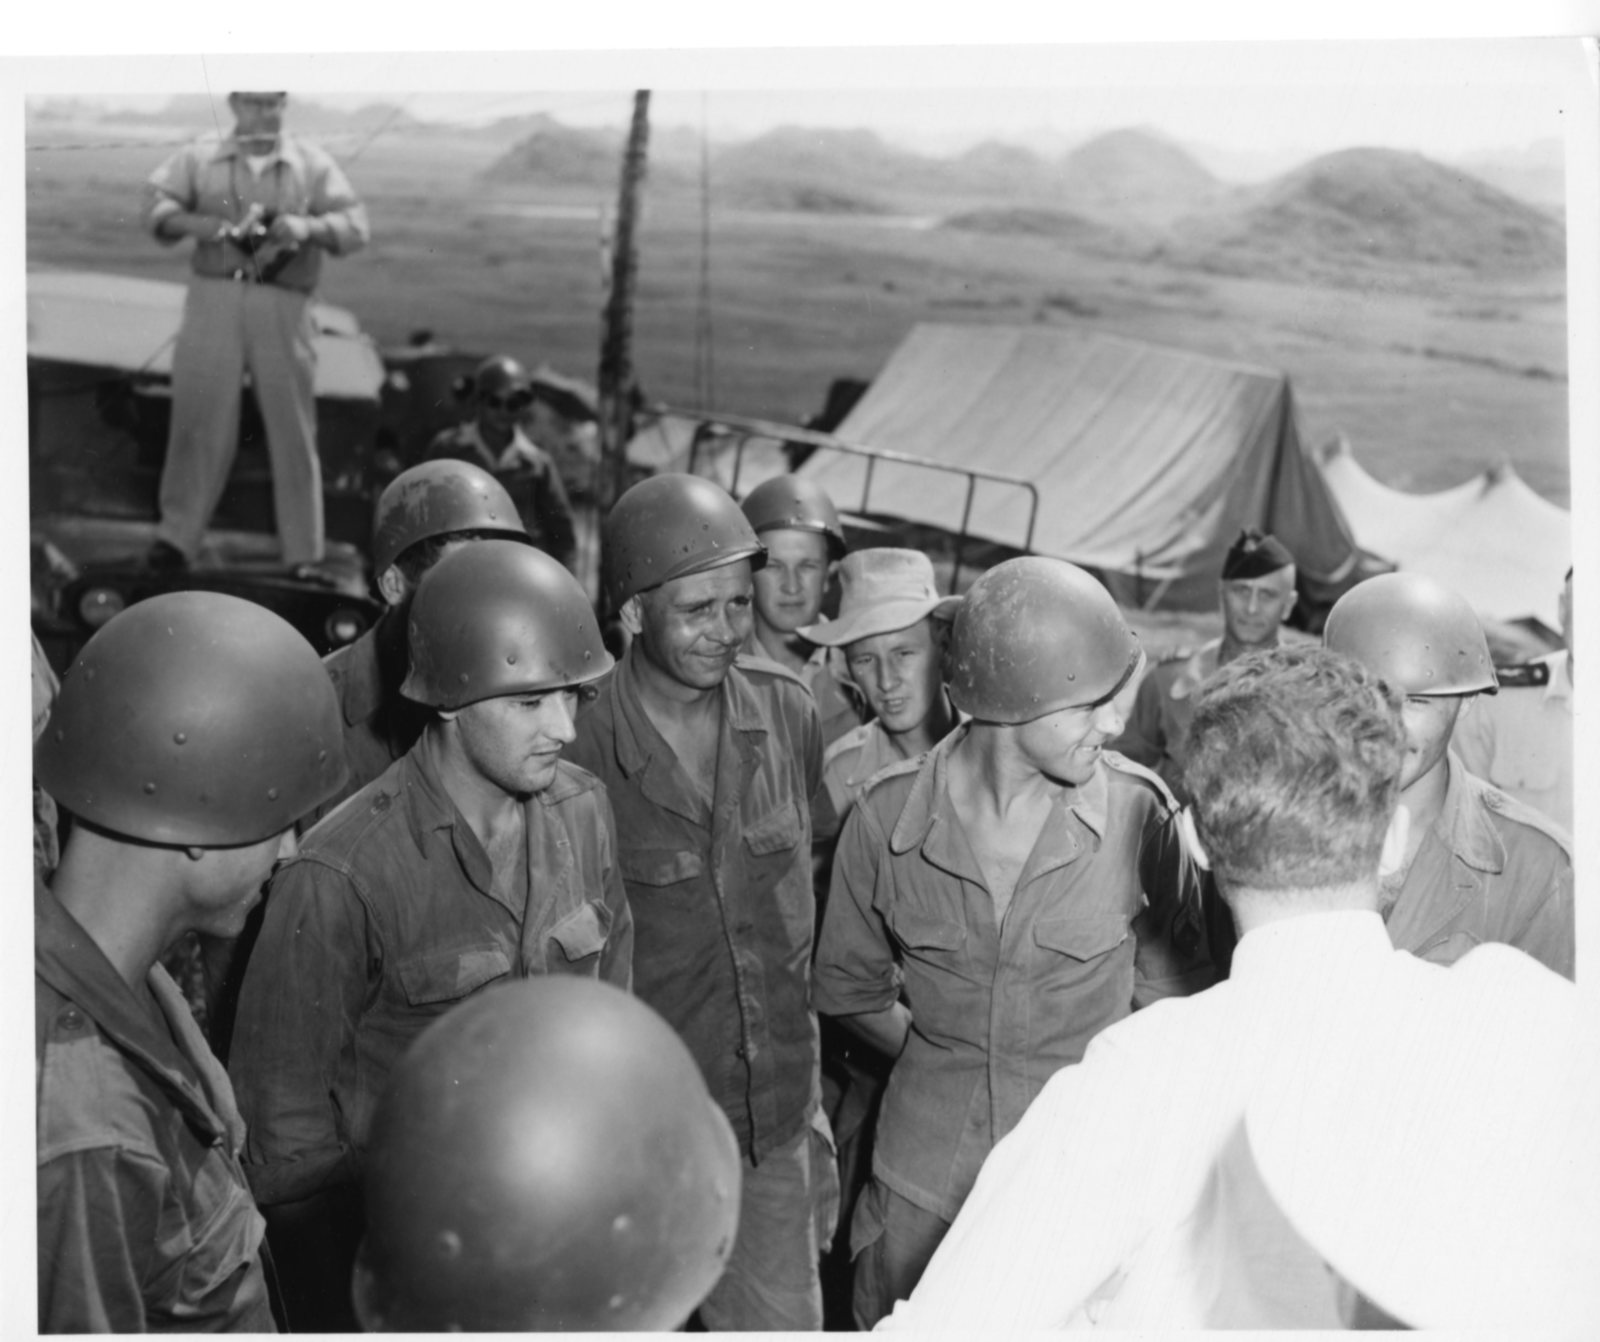 Richard Nixon inspects troops in Vietnam during his Far East Tour